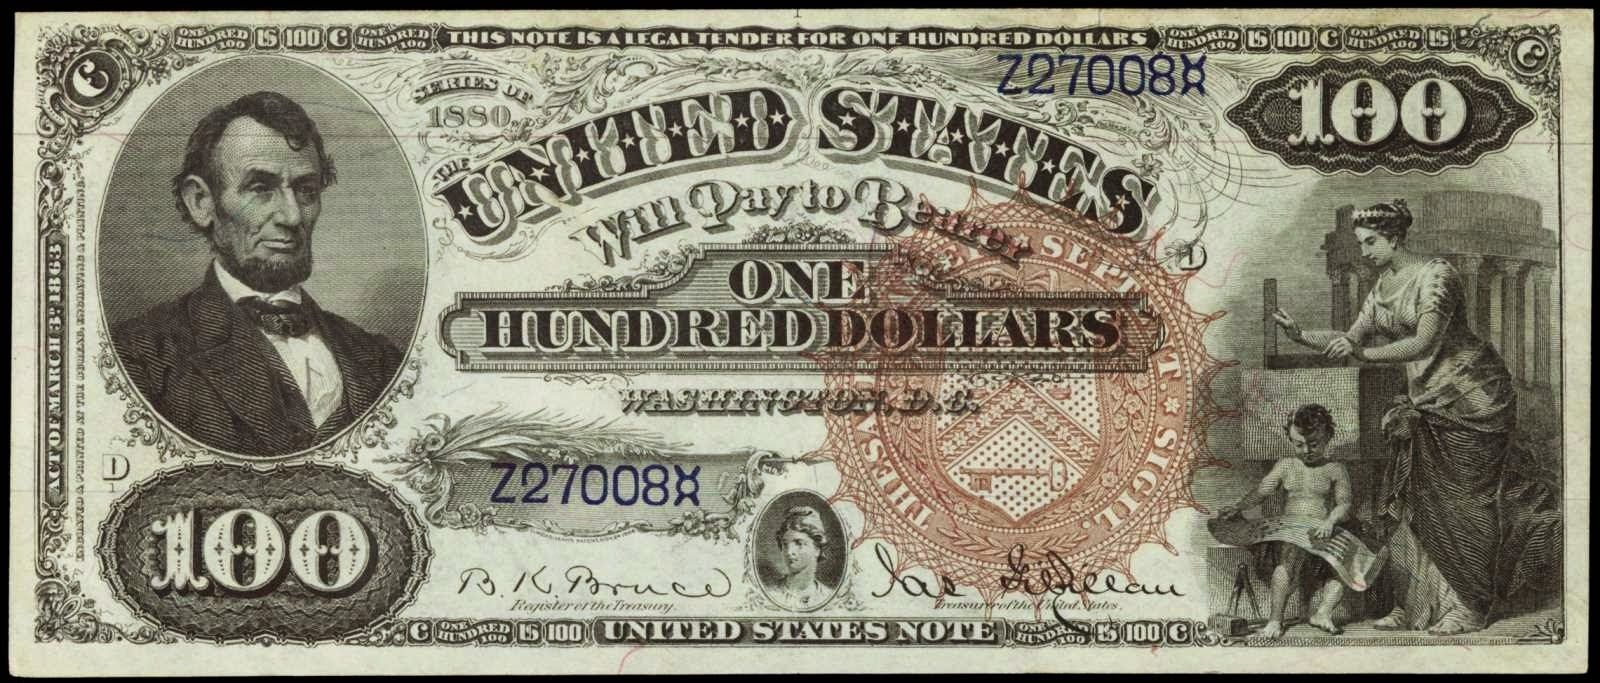 1880 100 Dollar Bill Legal Tender Note Abraham Lincoln World Banknotes Coins Old Money Currency Notes World Paper Dollar Paper Currency Banknotes Design